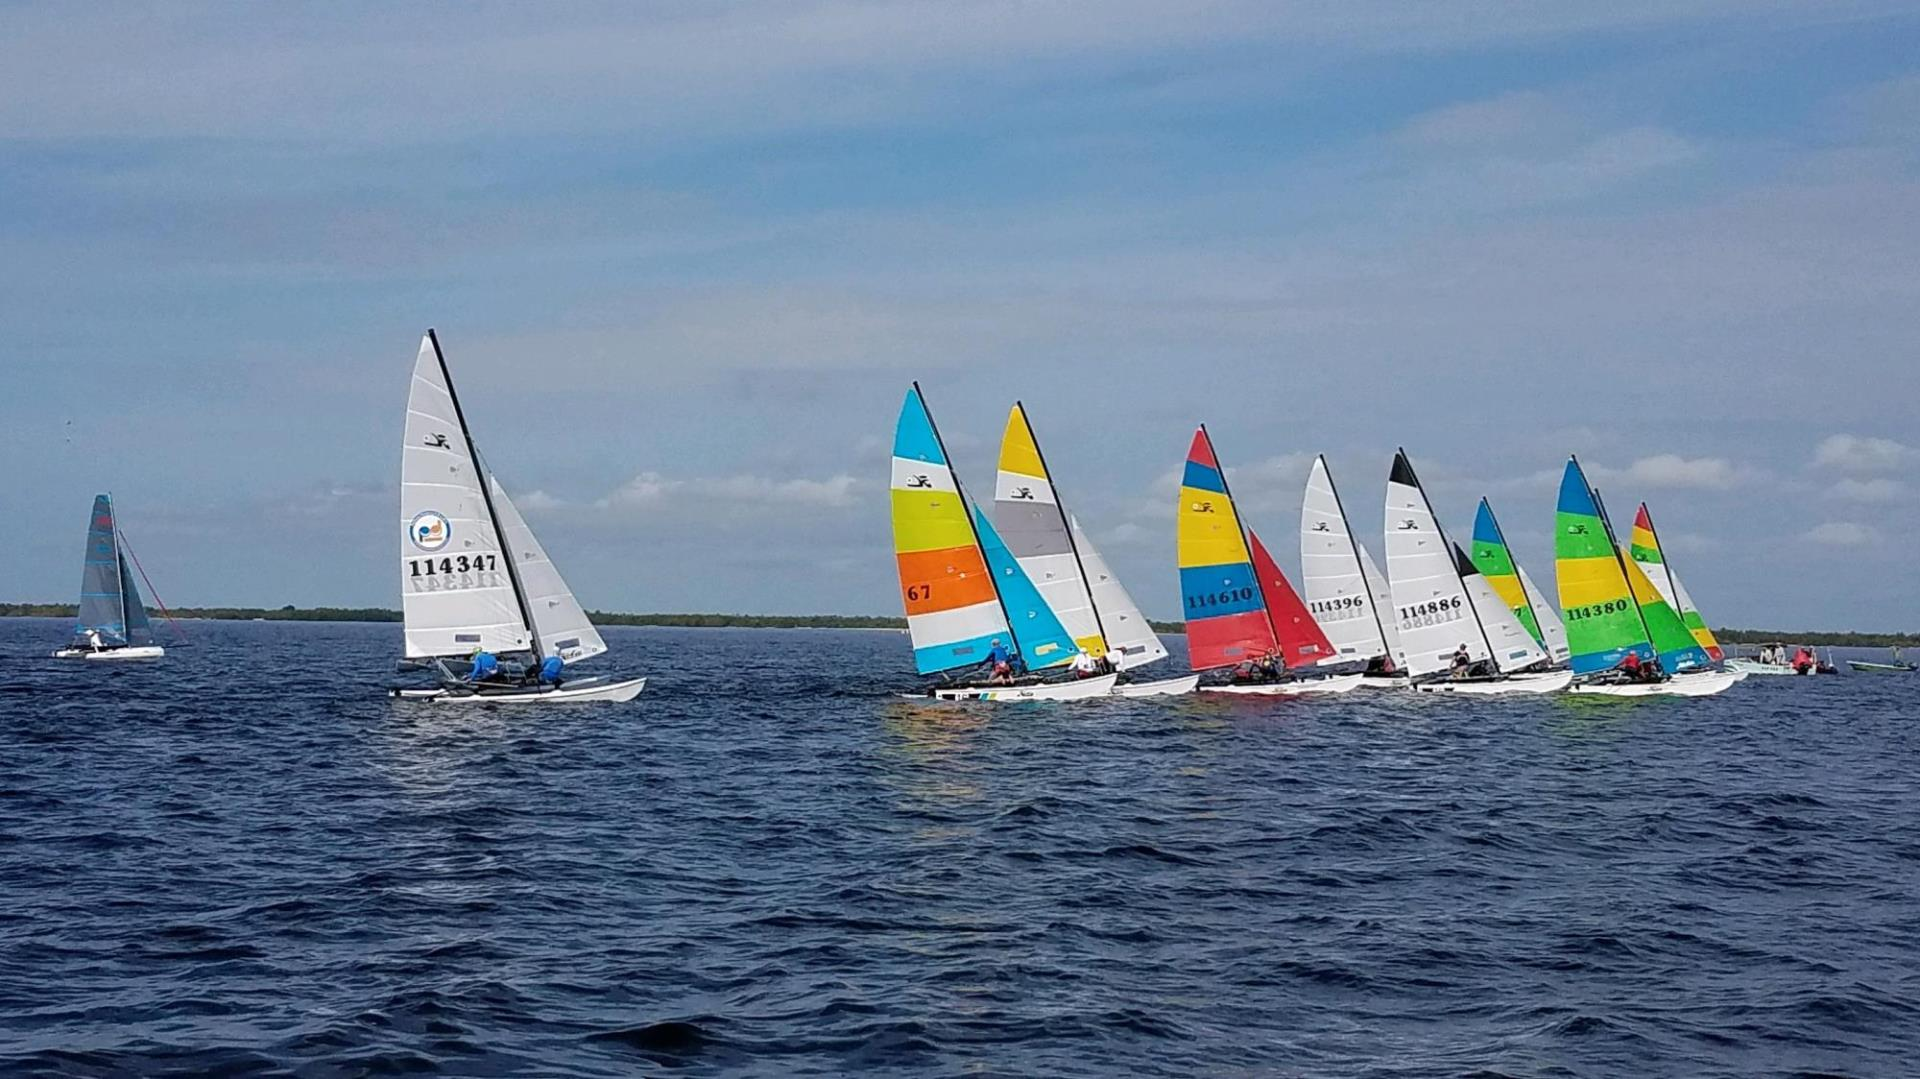 sailboats with bright colored sails